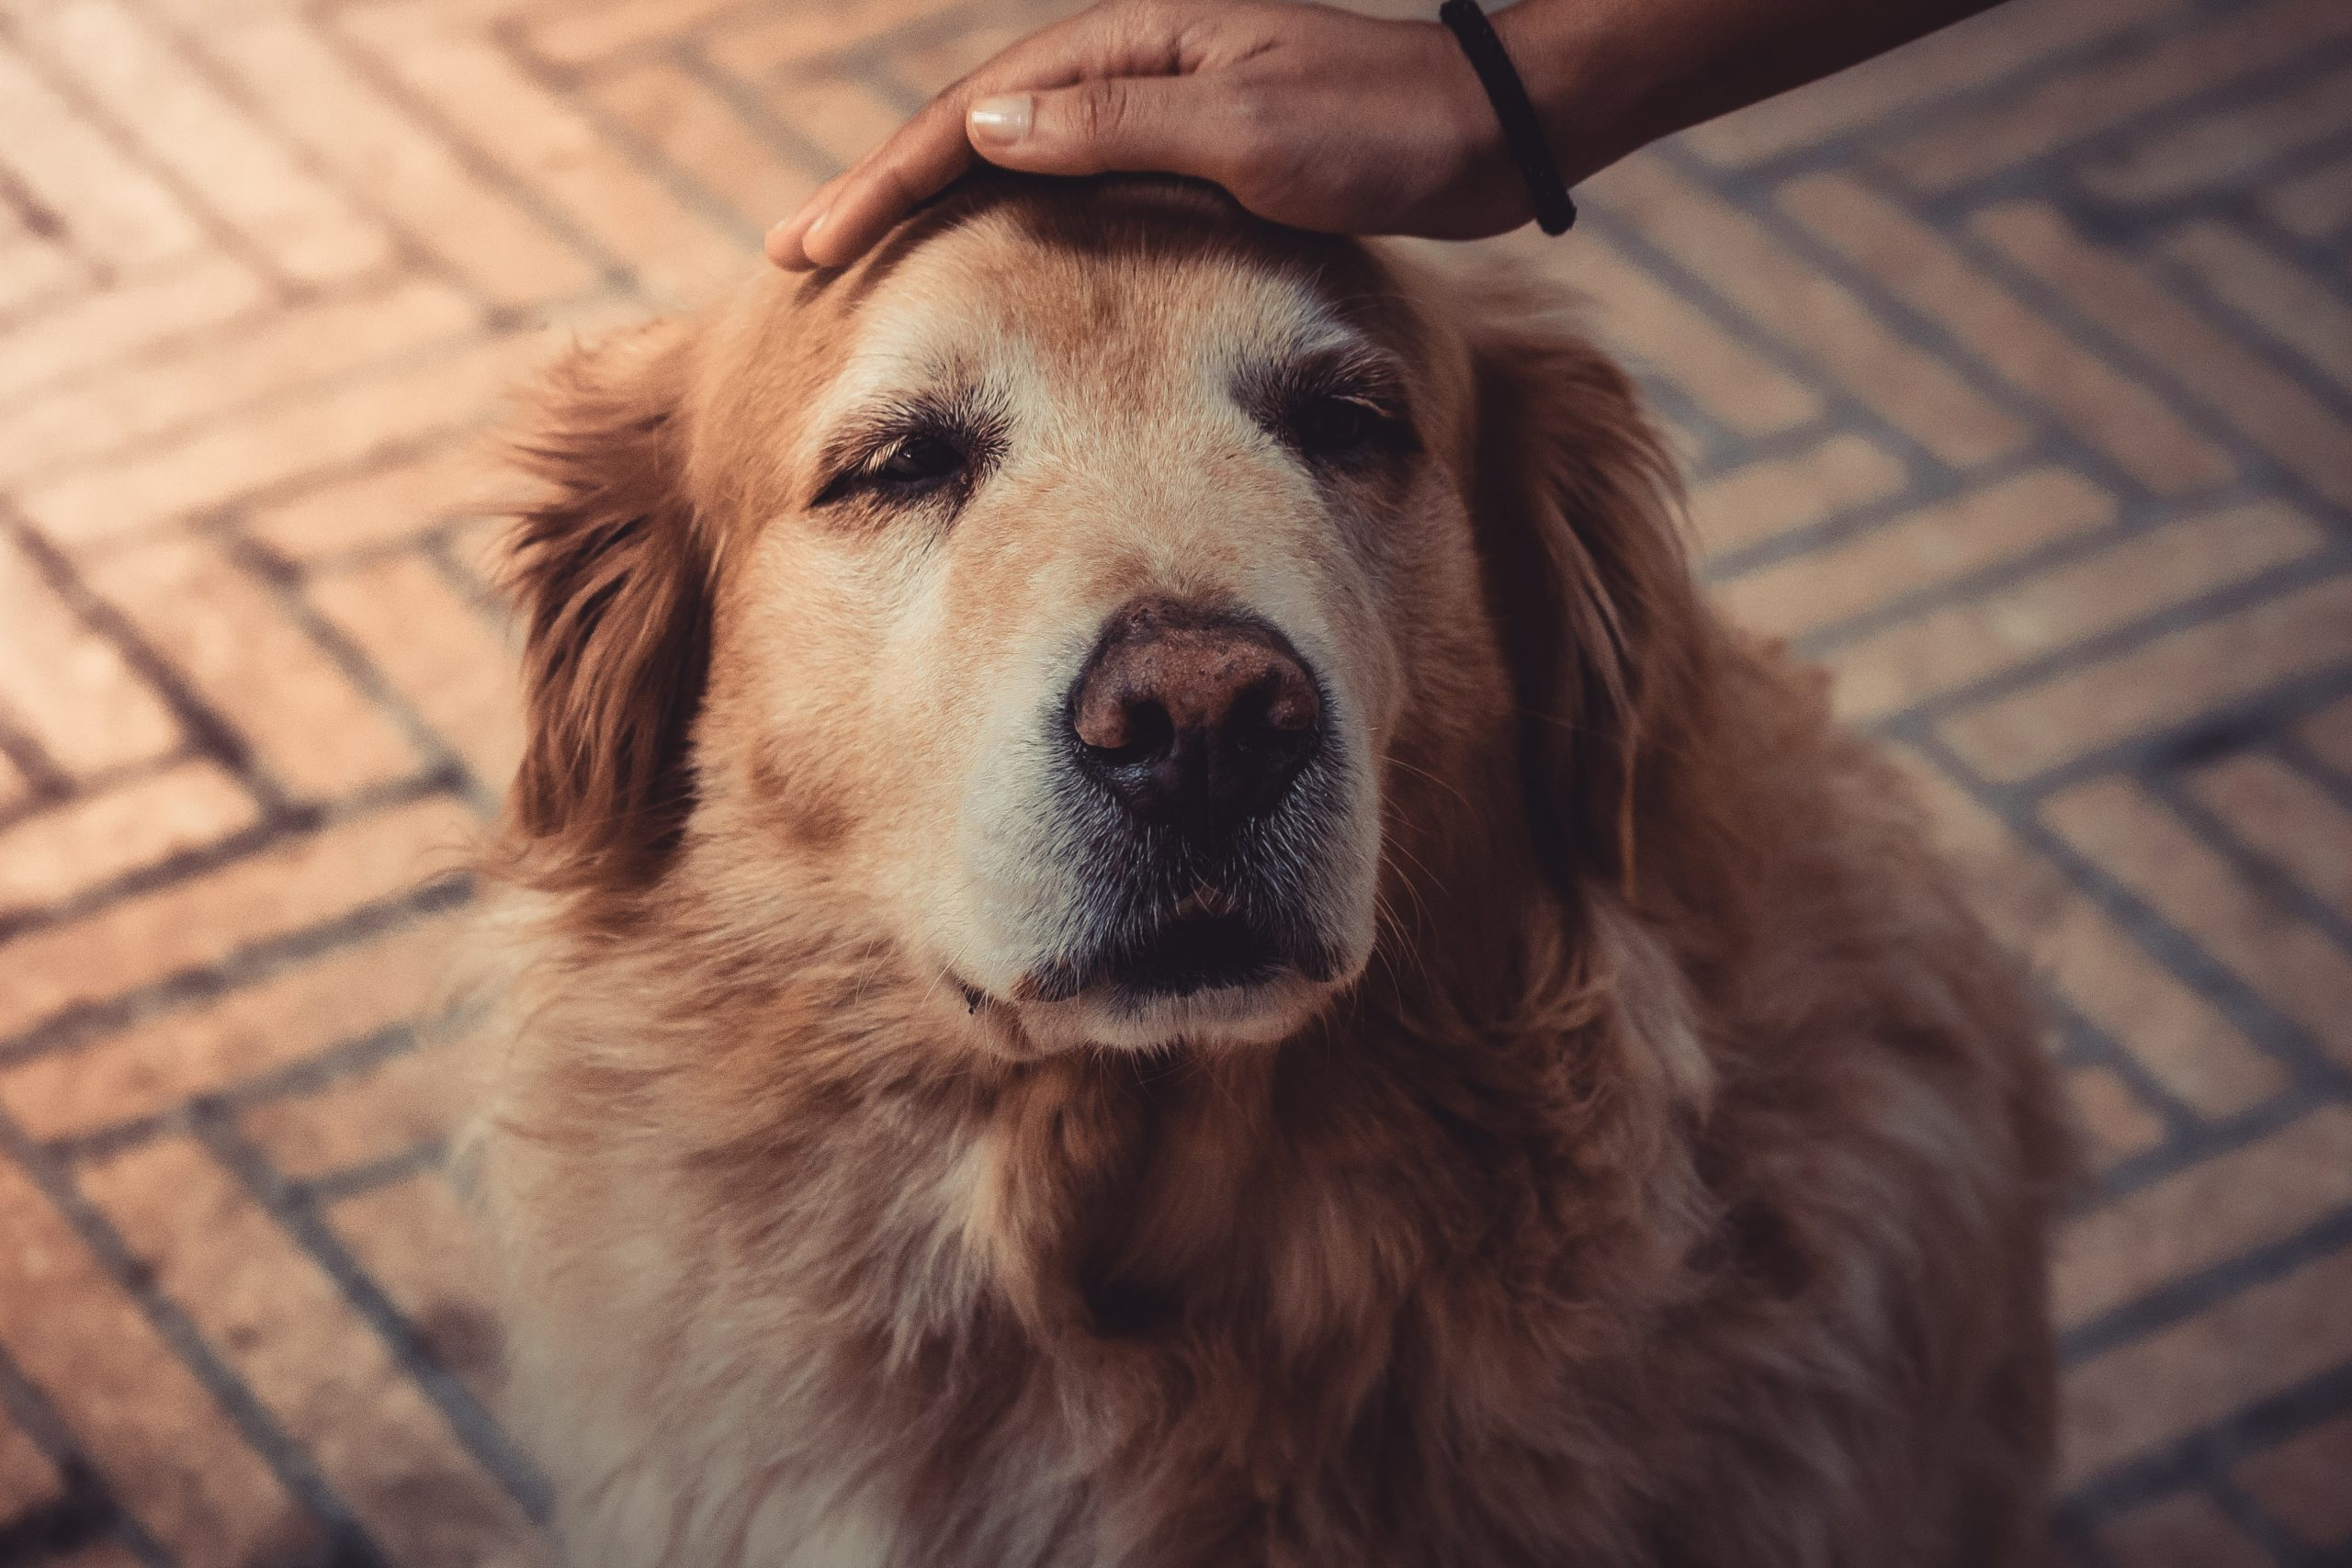 Grey-muzzled golden retriever with Caucasian hand petting top of head